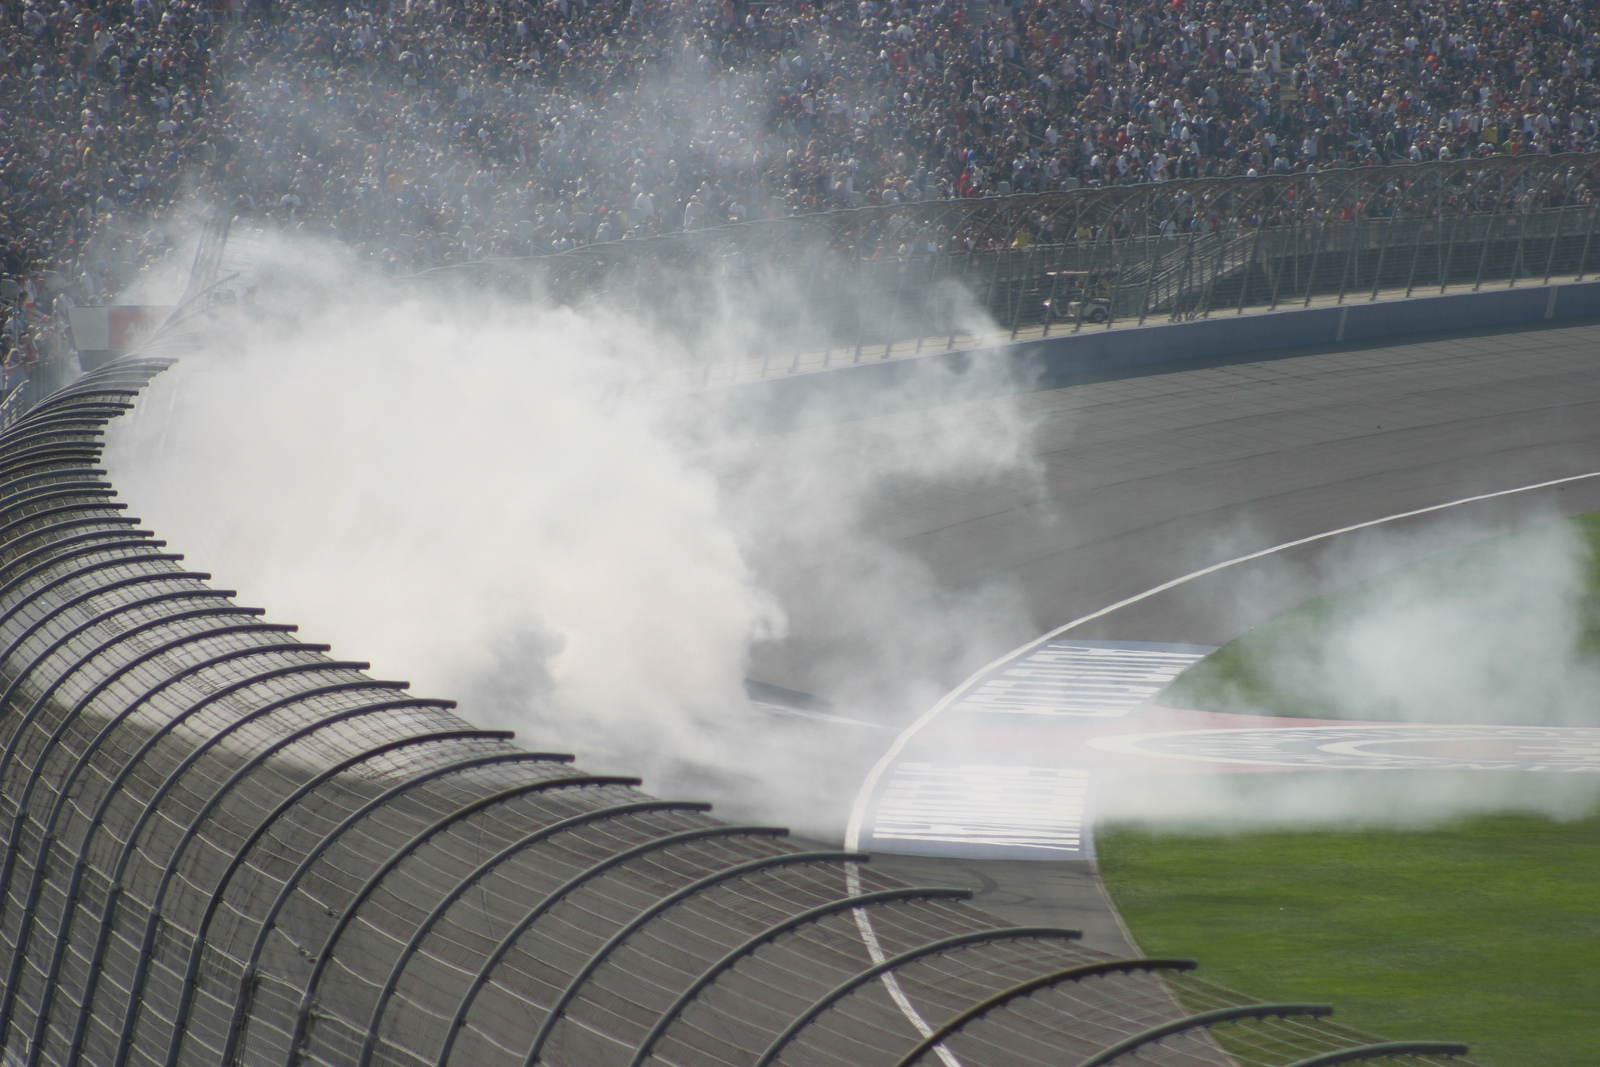 Busch's victory burn-out